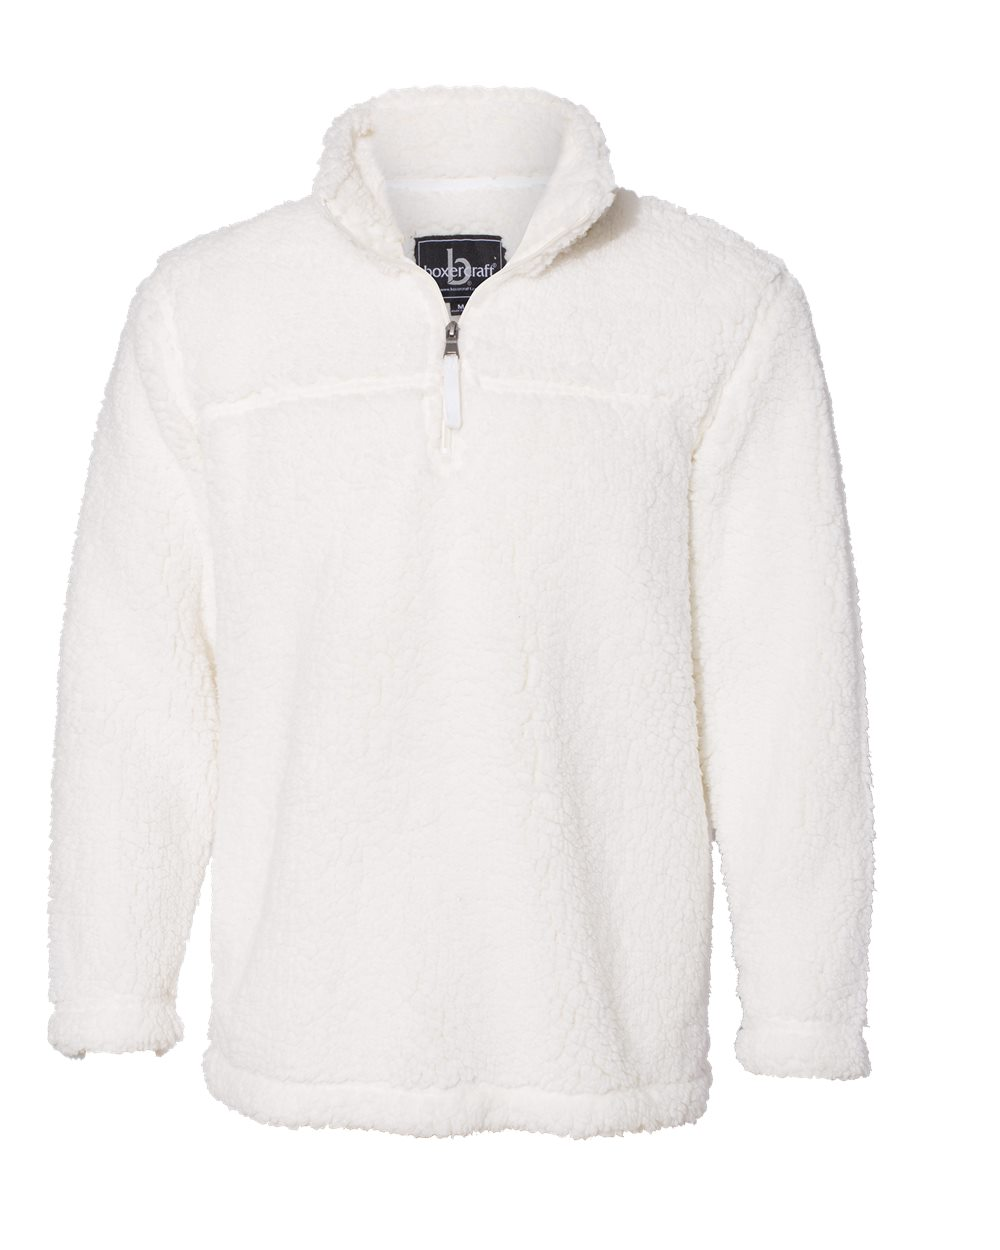 Boxercraft-Unisex-Sherpa-Quarter-Zip-Pullover-Sweatshirt-Sweater-Q10-up-to-3XL thumbnail 29